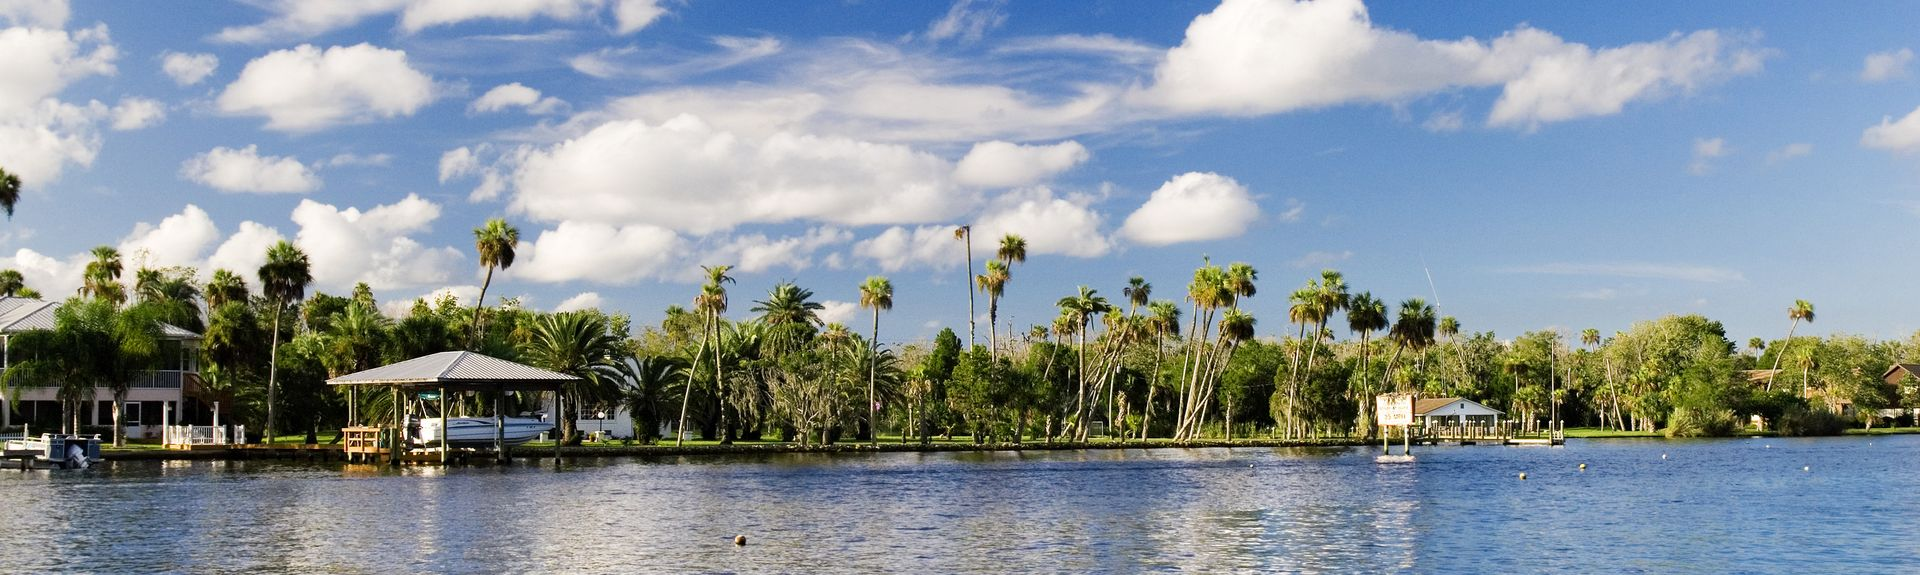 Homosassa, Florida, USA